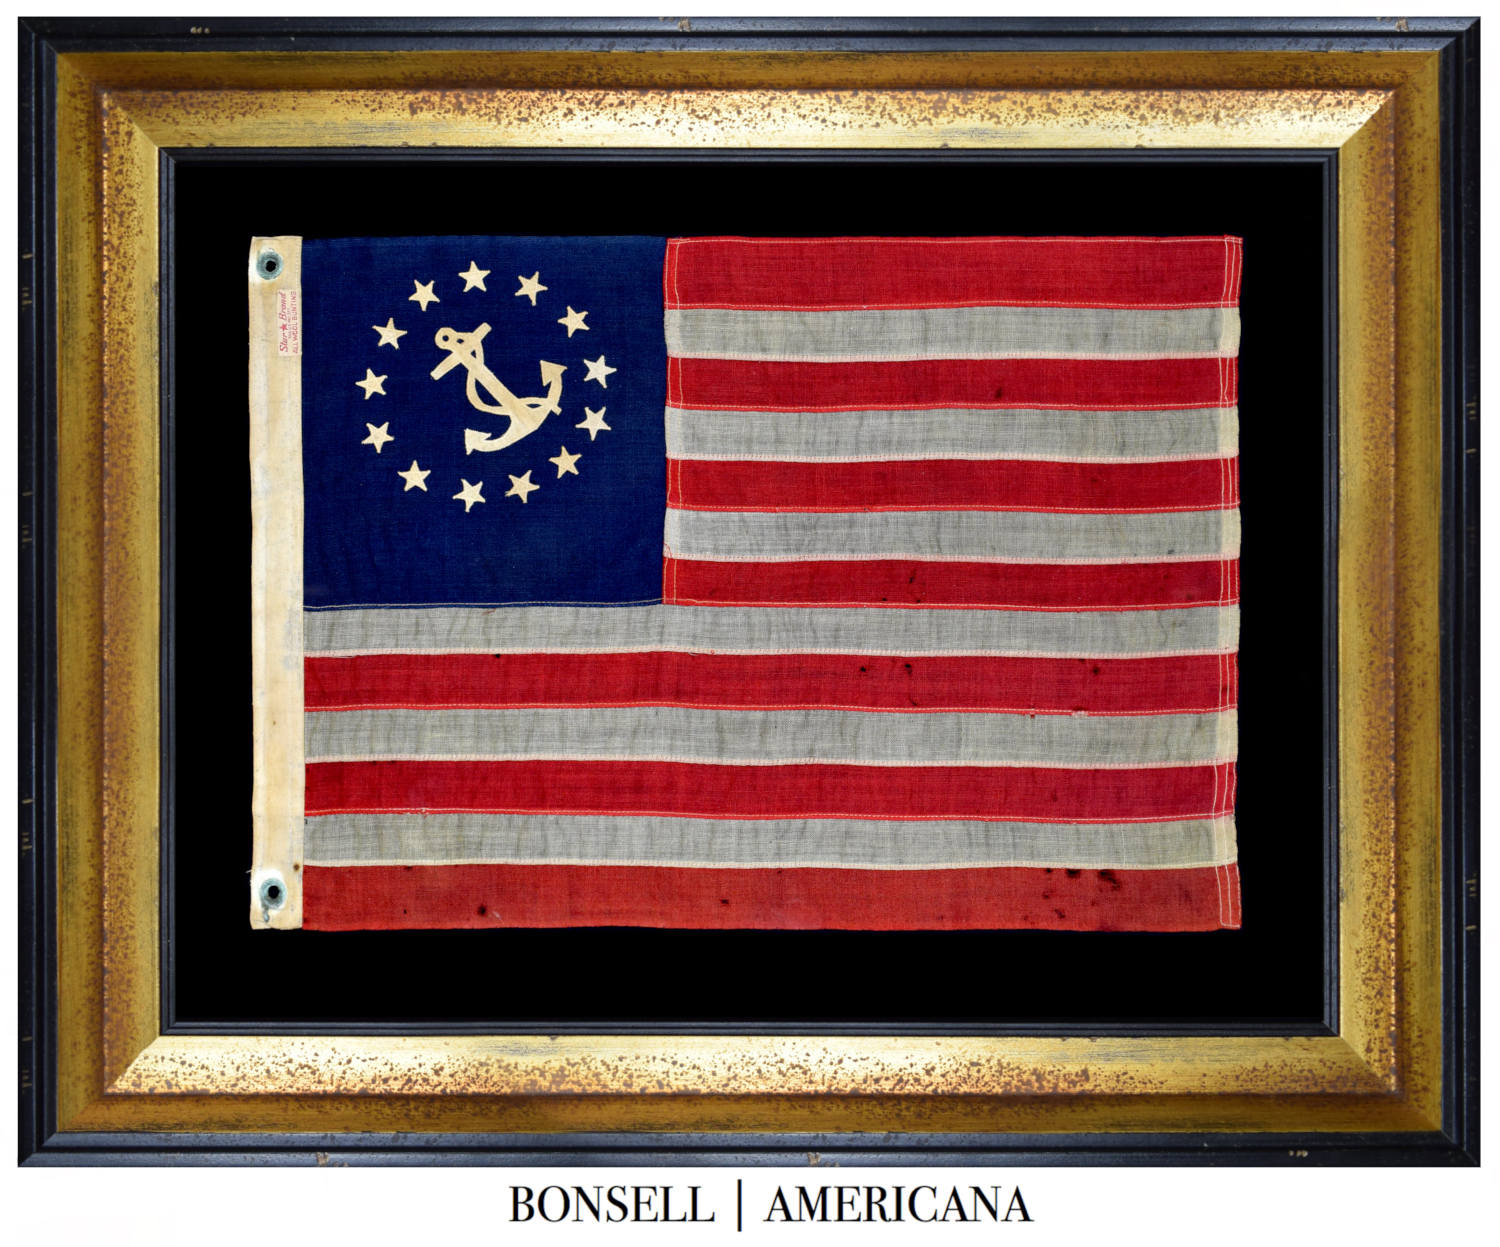 13 Star Antique Yacht Flag With